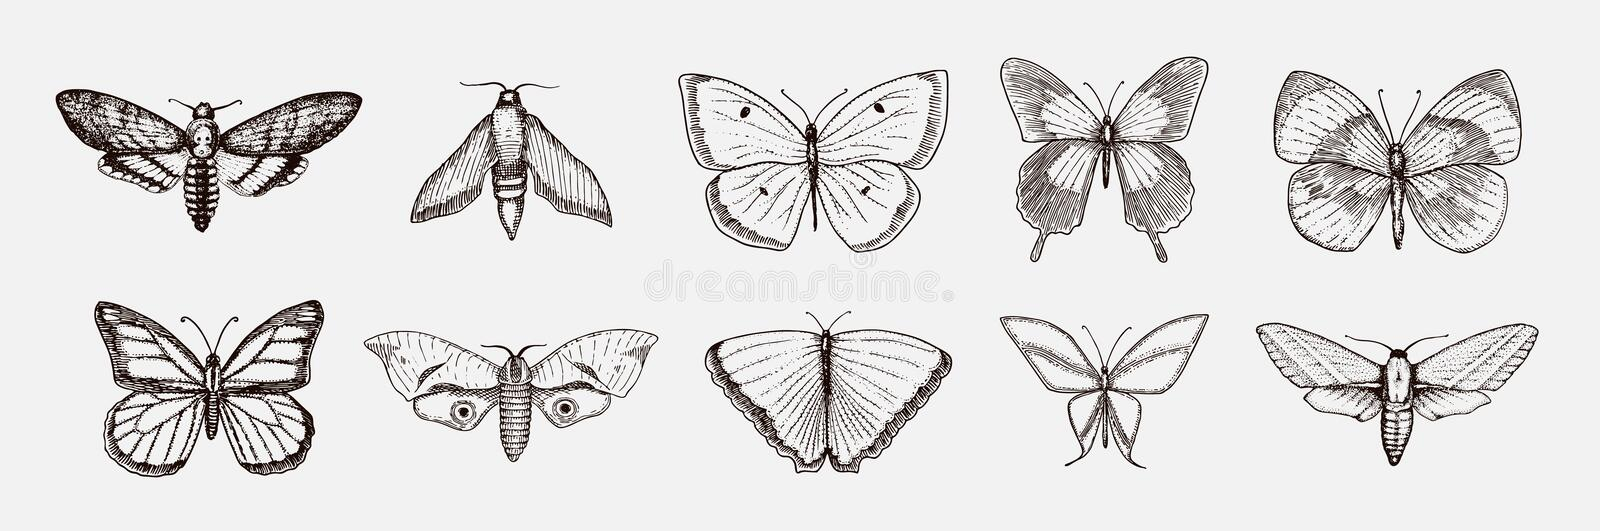 Collection of butterfly or wild moths insects. Mystical symbol or entomological of freedom. Engraved hand drawn vintage vector illustration